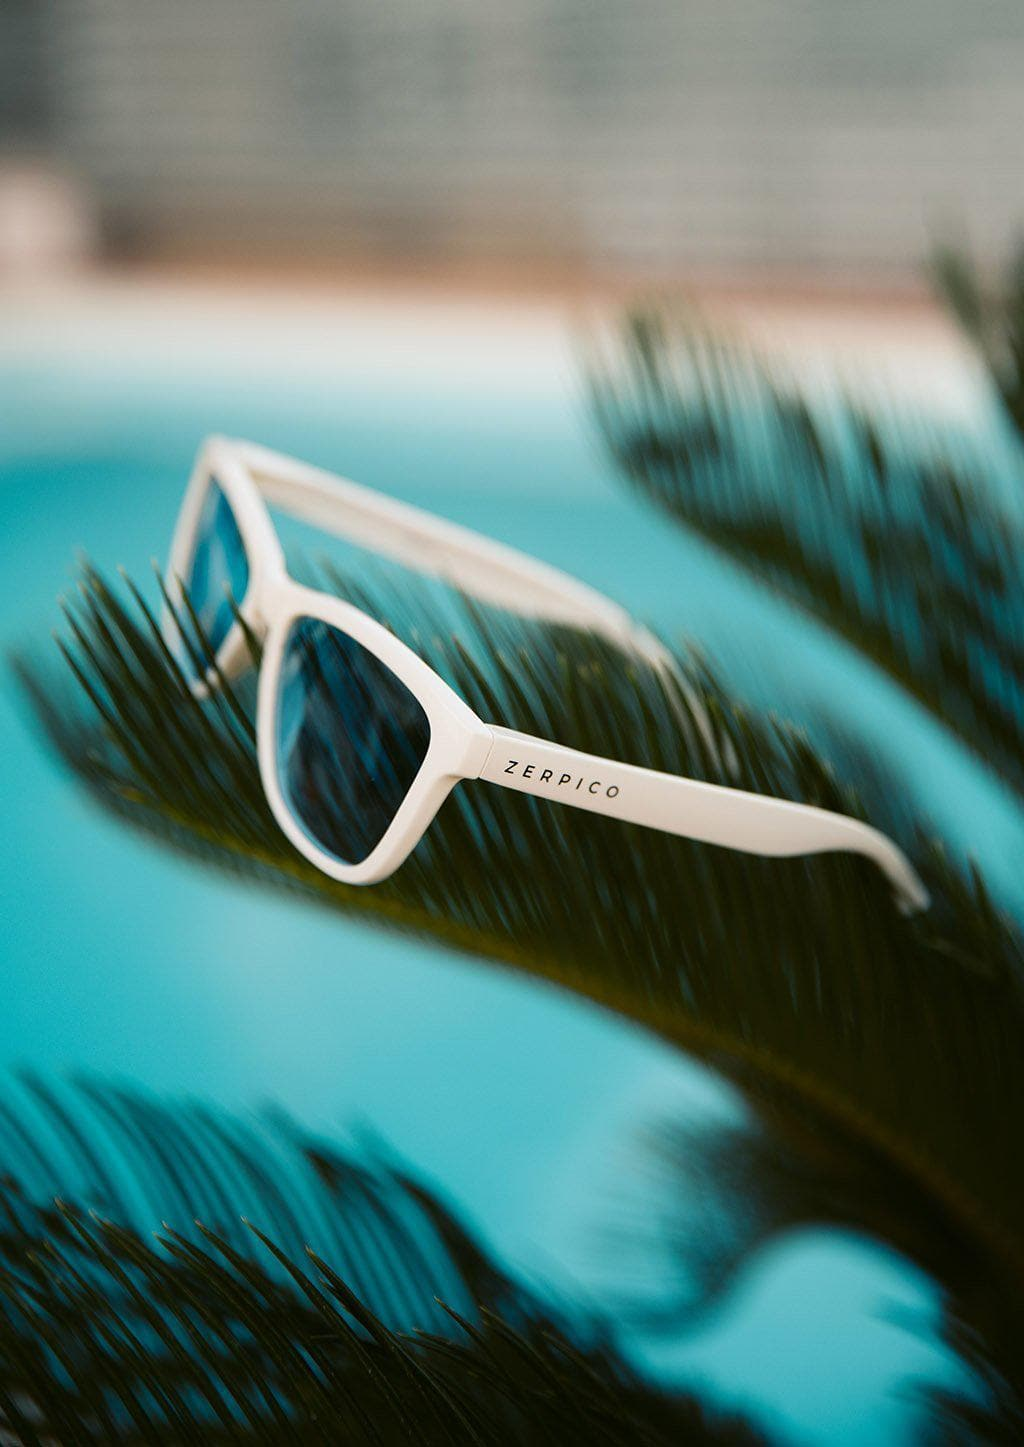 Our Mood V2 is an improved version of our last wayfarers. Plastic body for great quality and durabilty. This is Ace with white frame and black lenses. Lifestyle photo outside beside a pool.